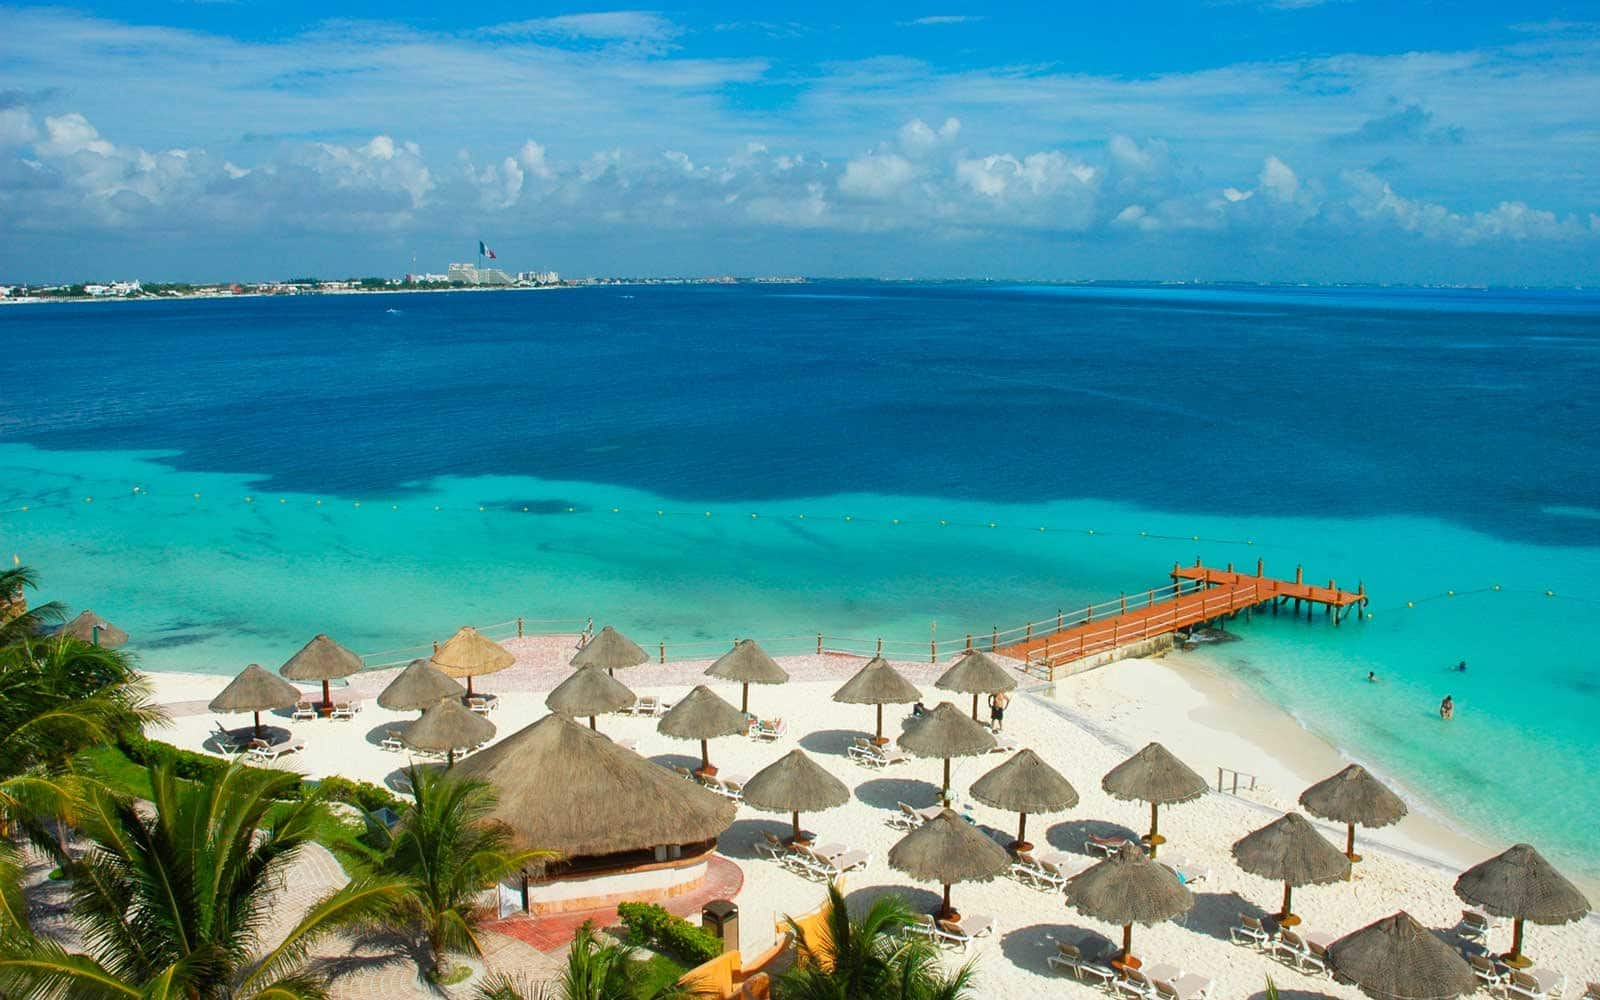 Houston to Cancun Mexico $170 RT Nonstop Airfares on United Airlines BE (Flexible Travel August - December 2020)